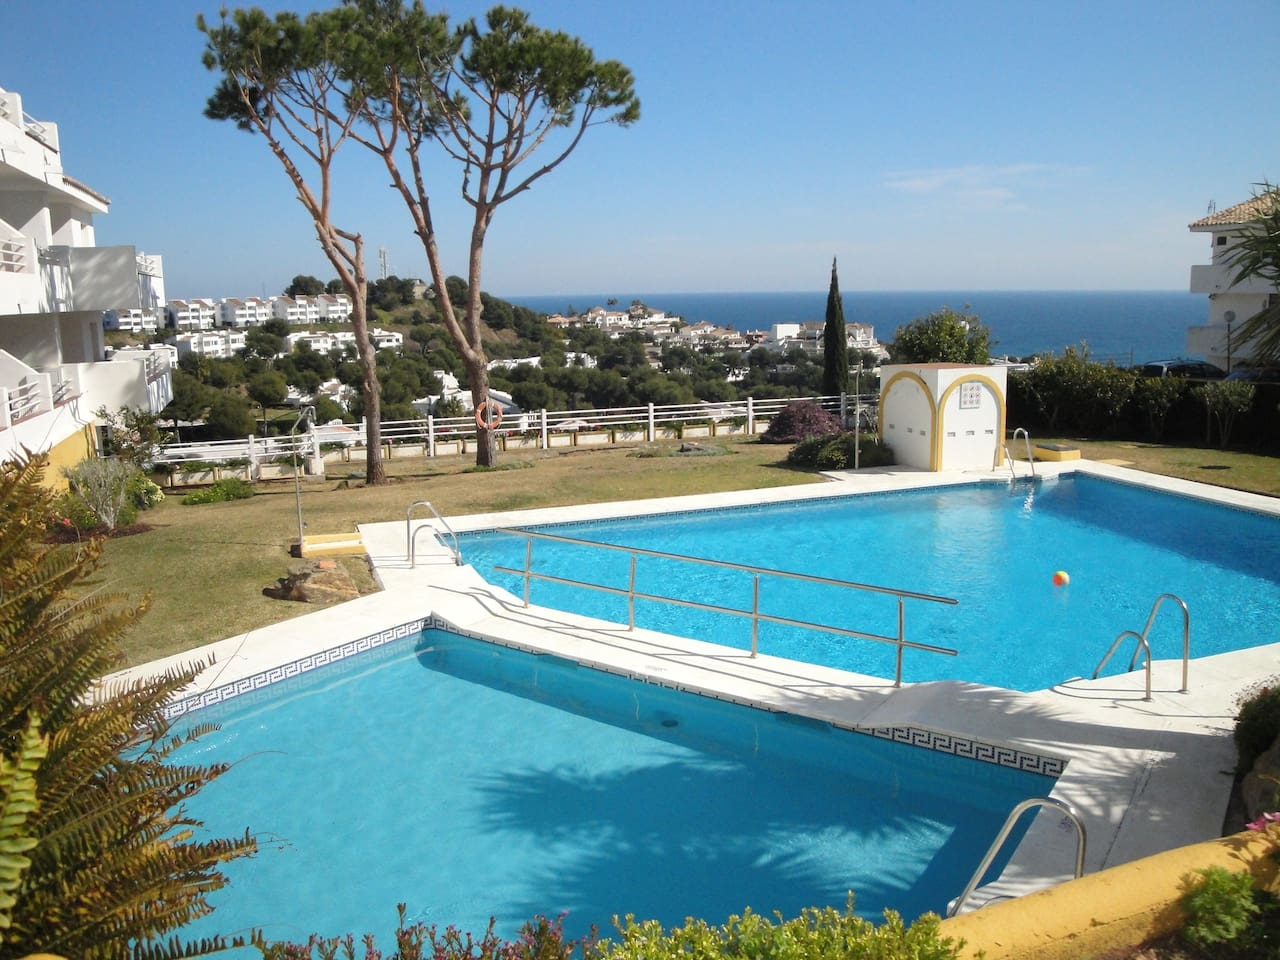 Large childrens pool and adult pool